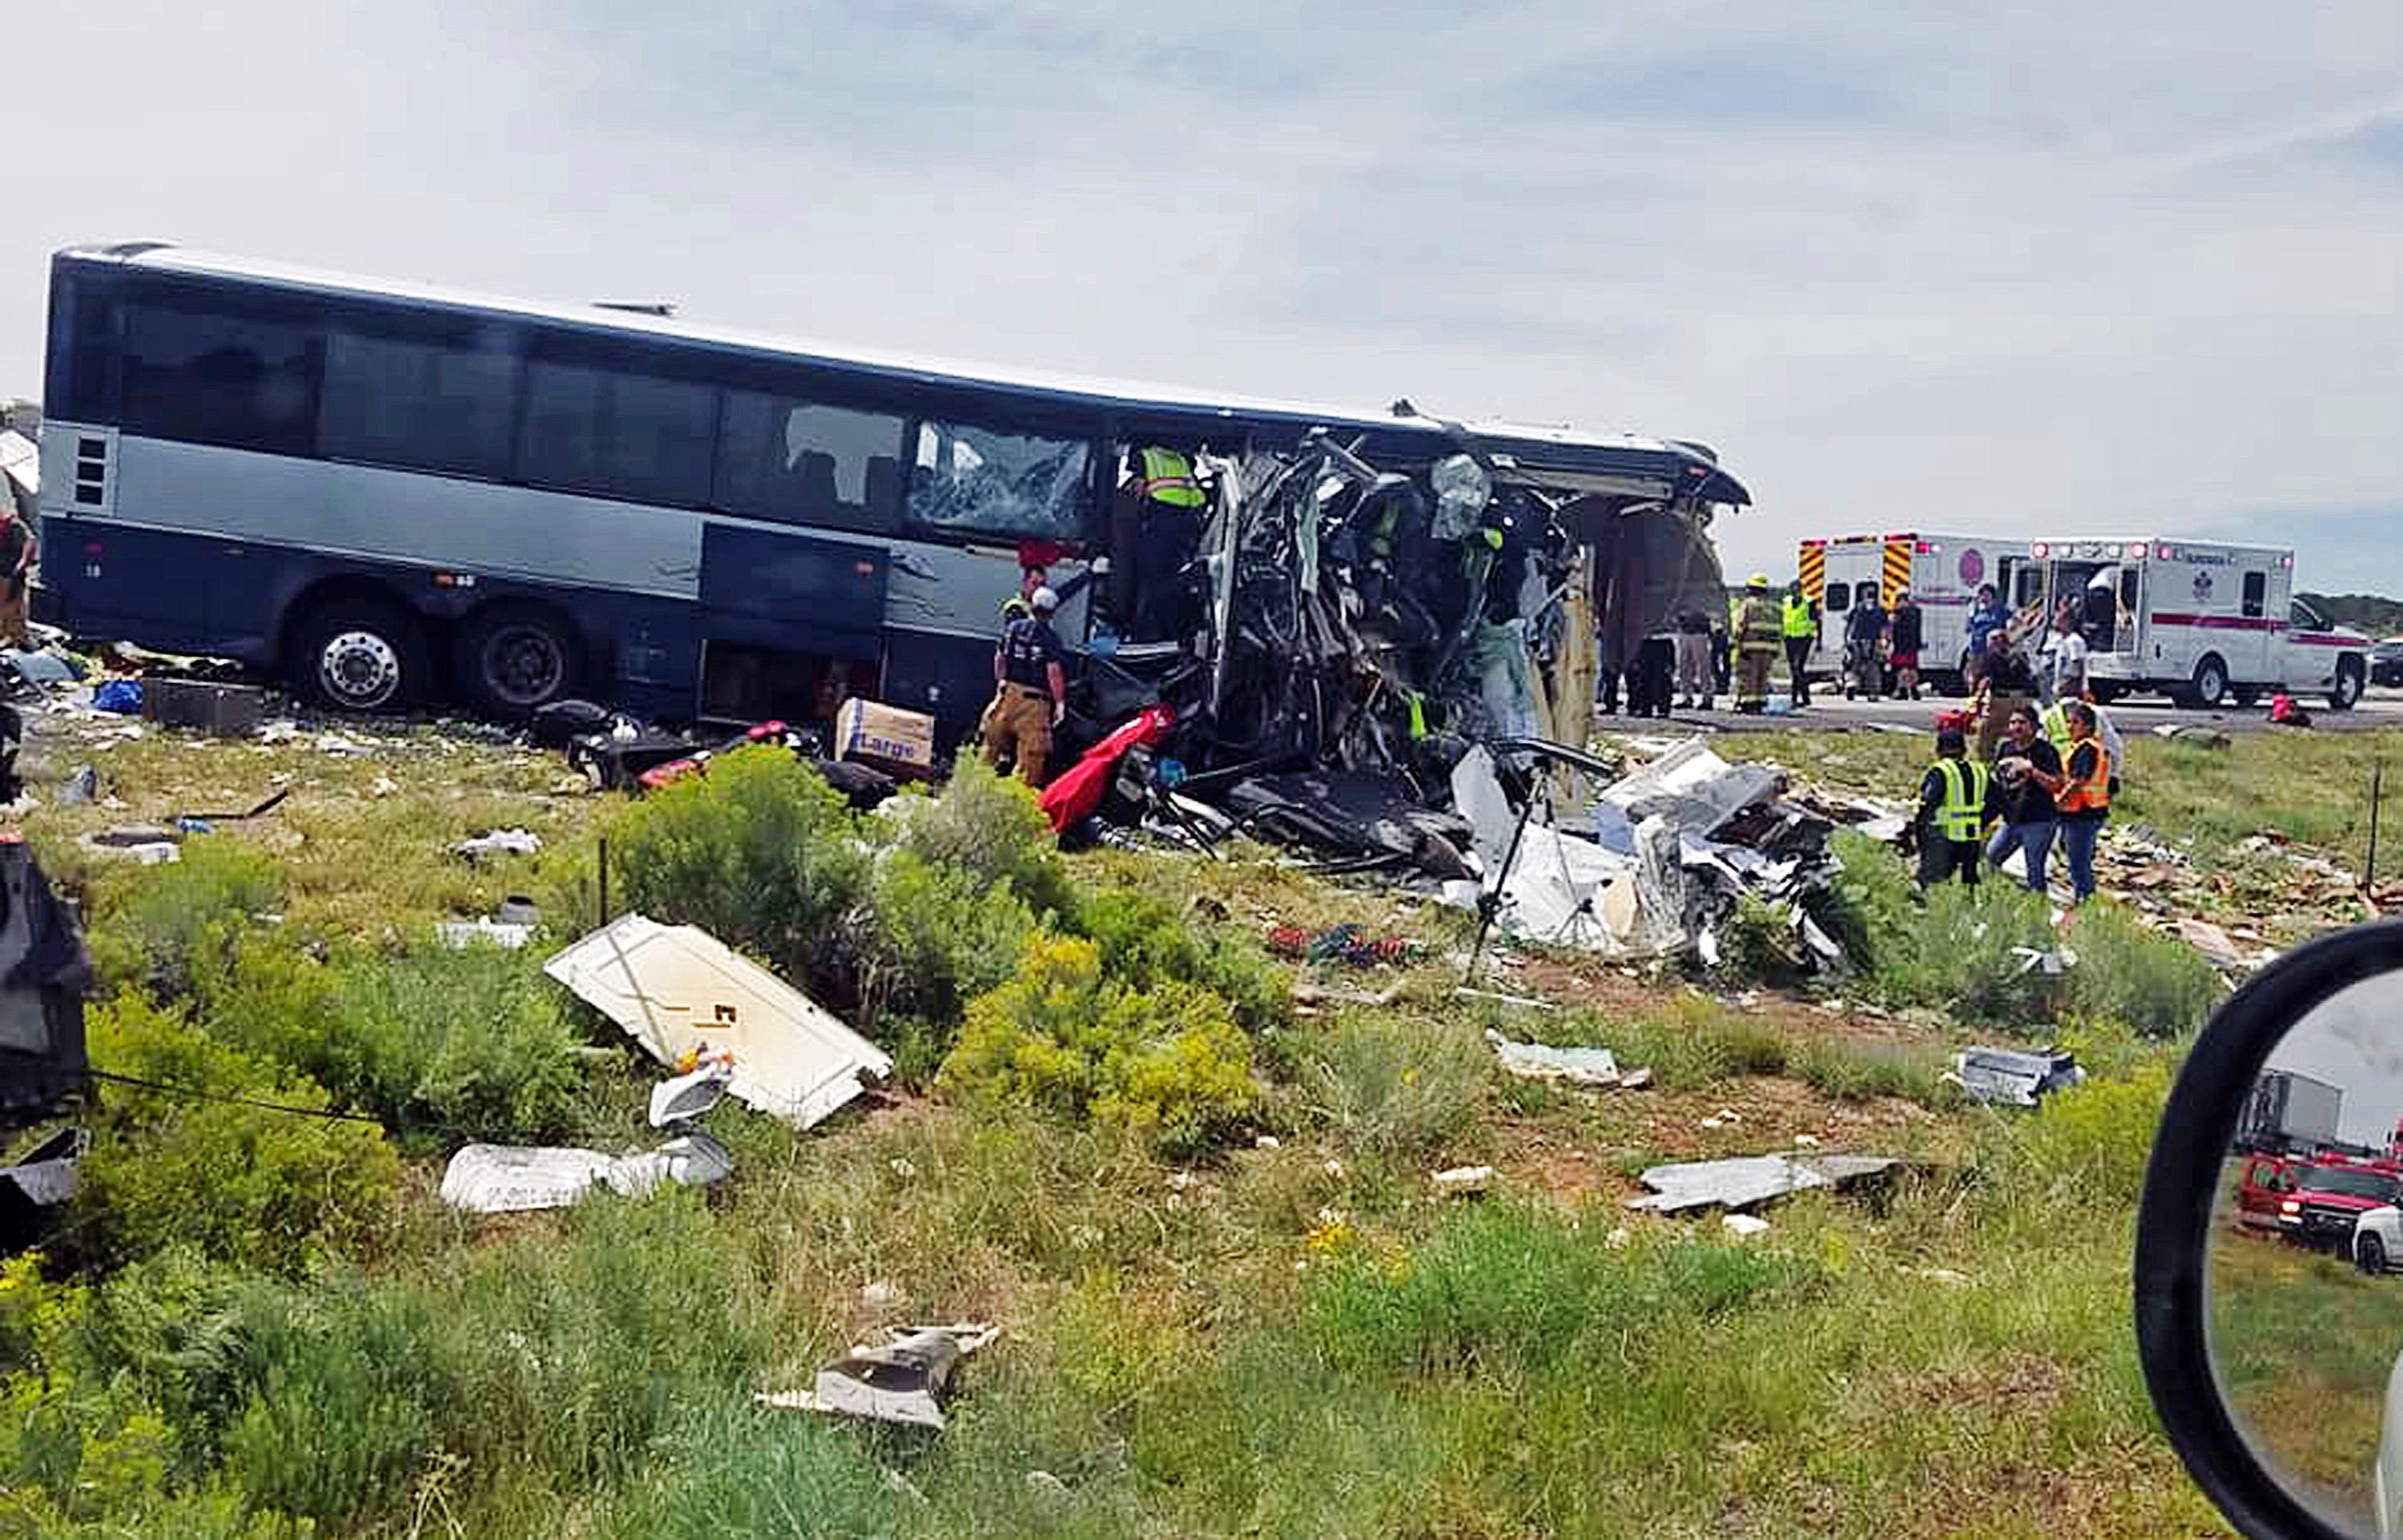 8 dead, dozens injured after Greyhound bus and truck collide in New Mexico